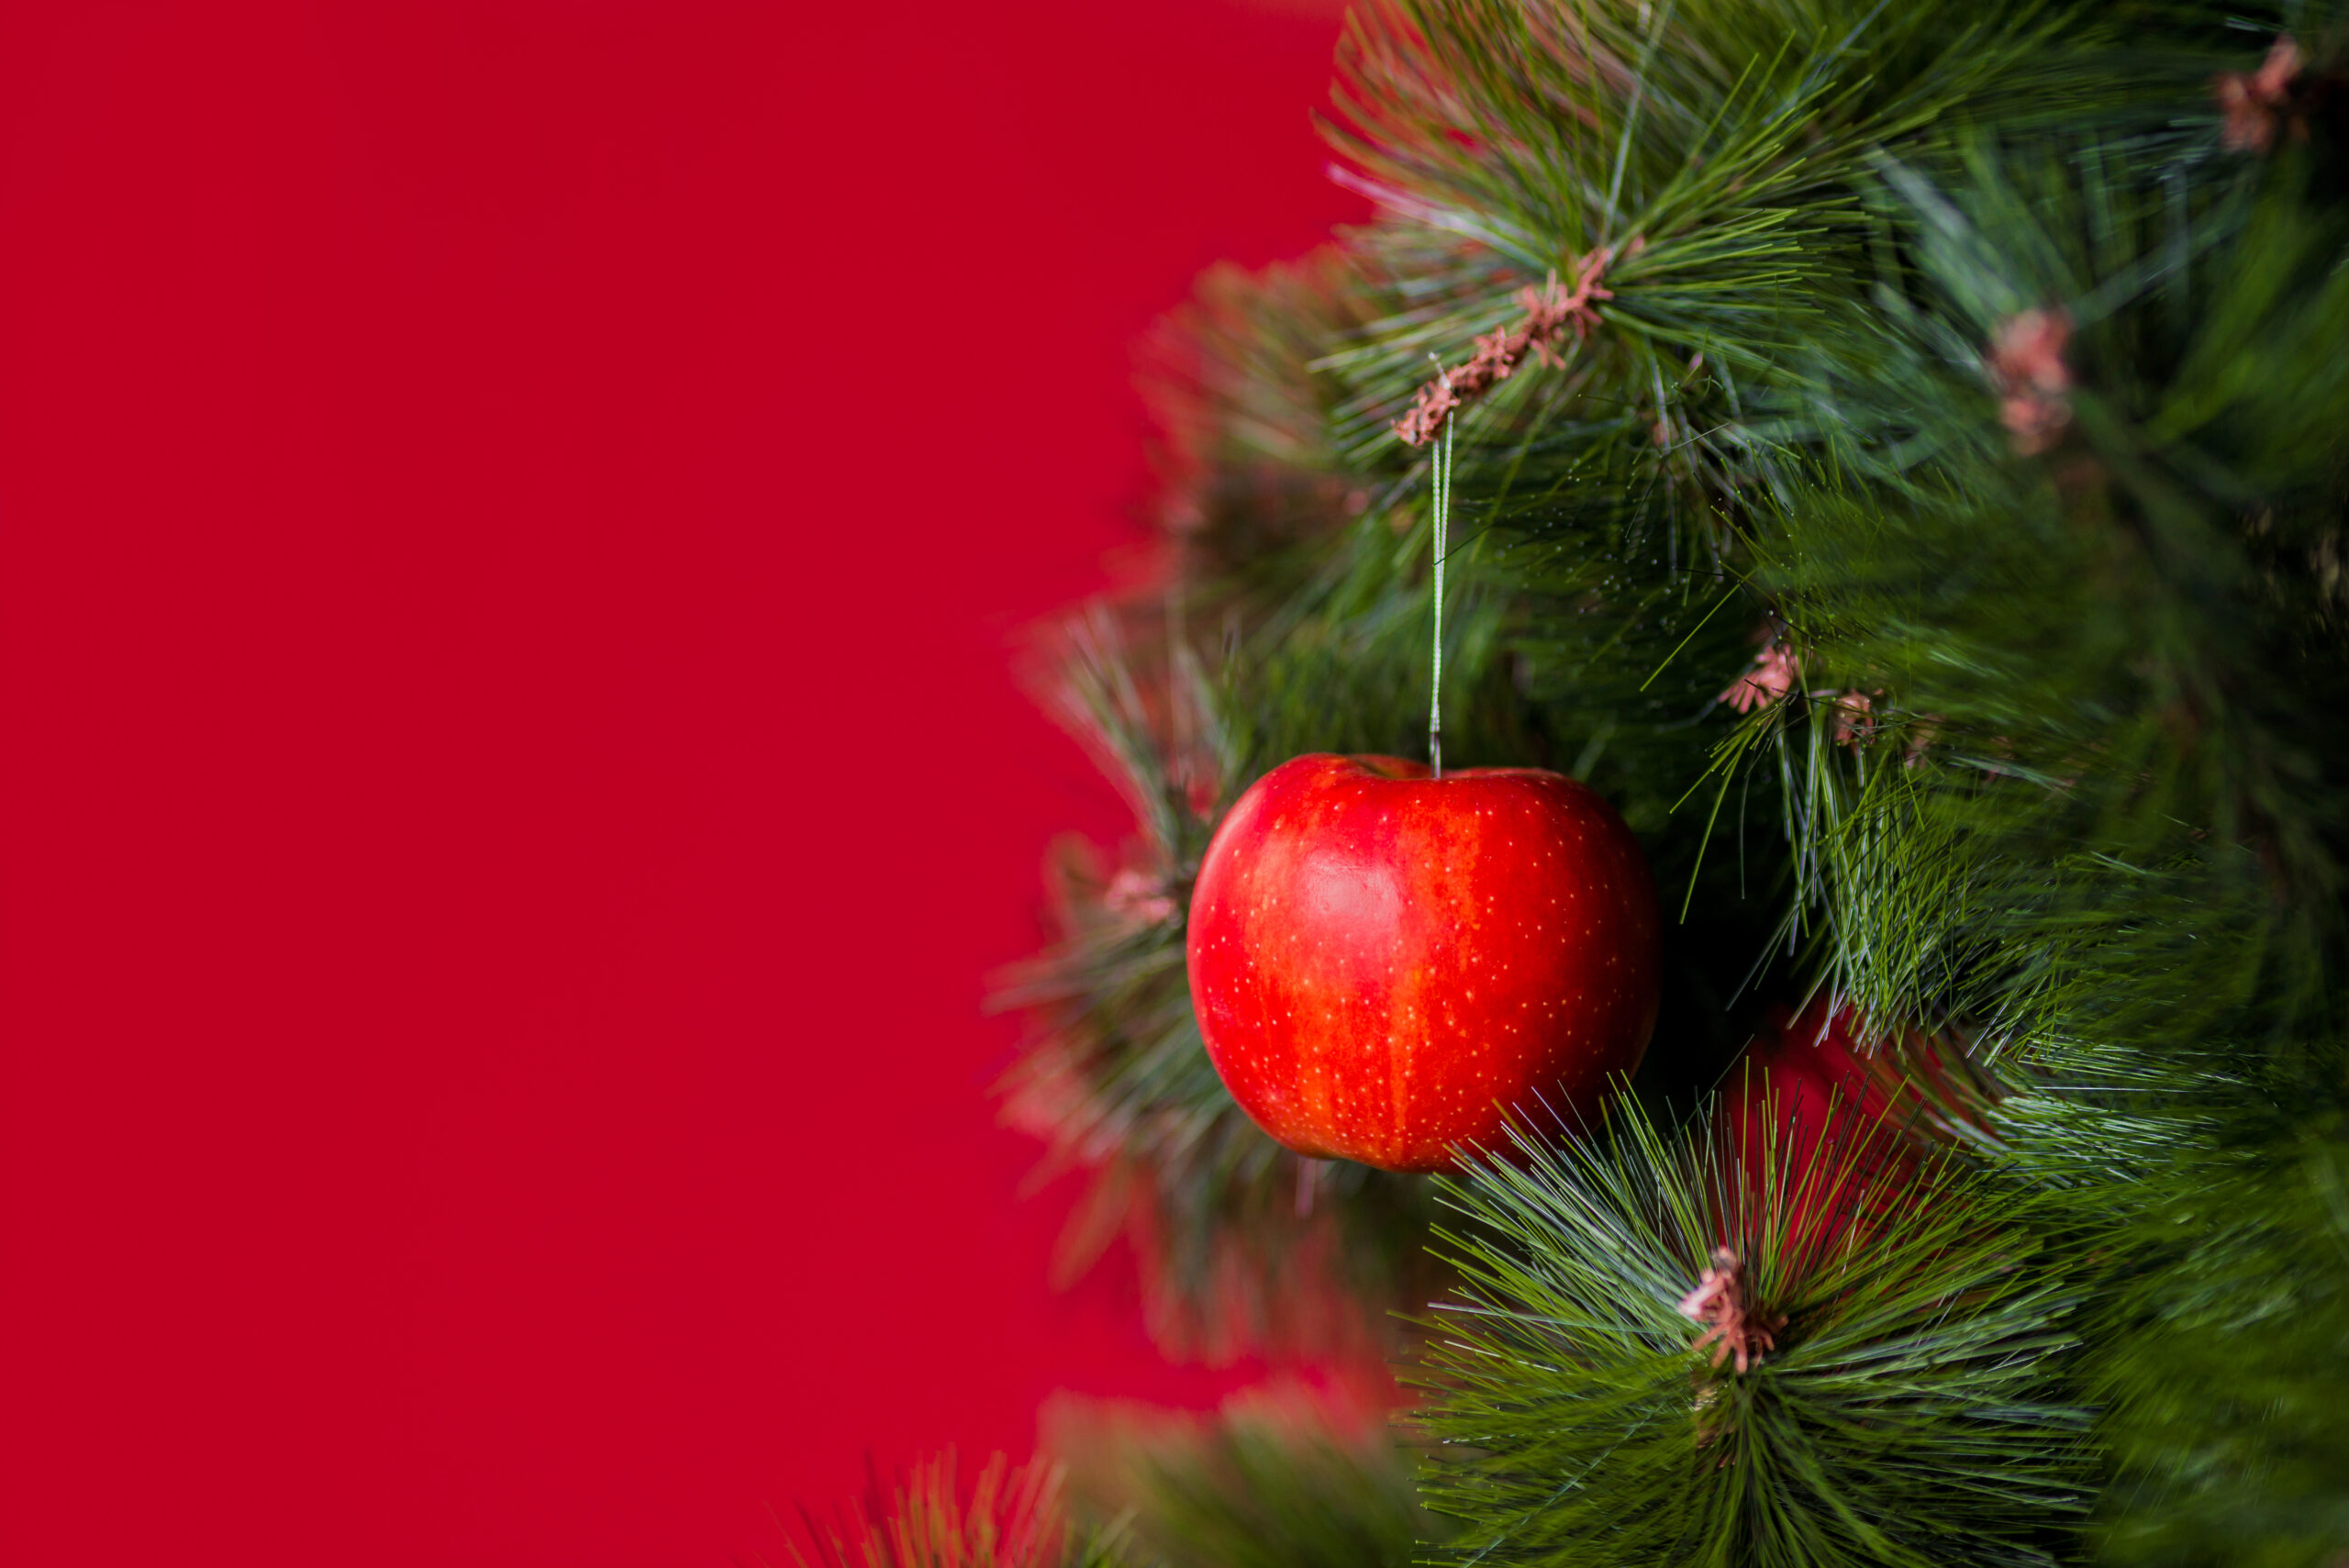 How Apples Are the Core of Christmas Tree Decorations